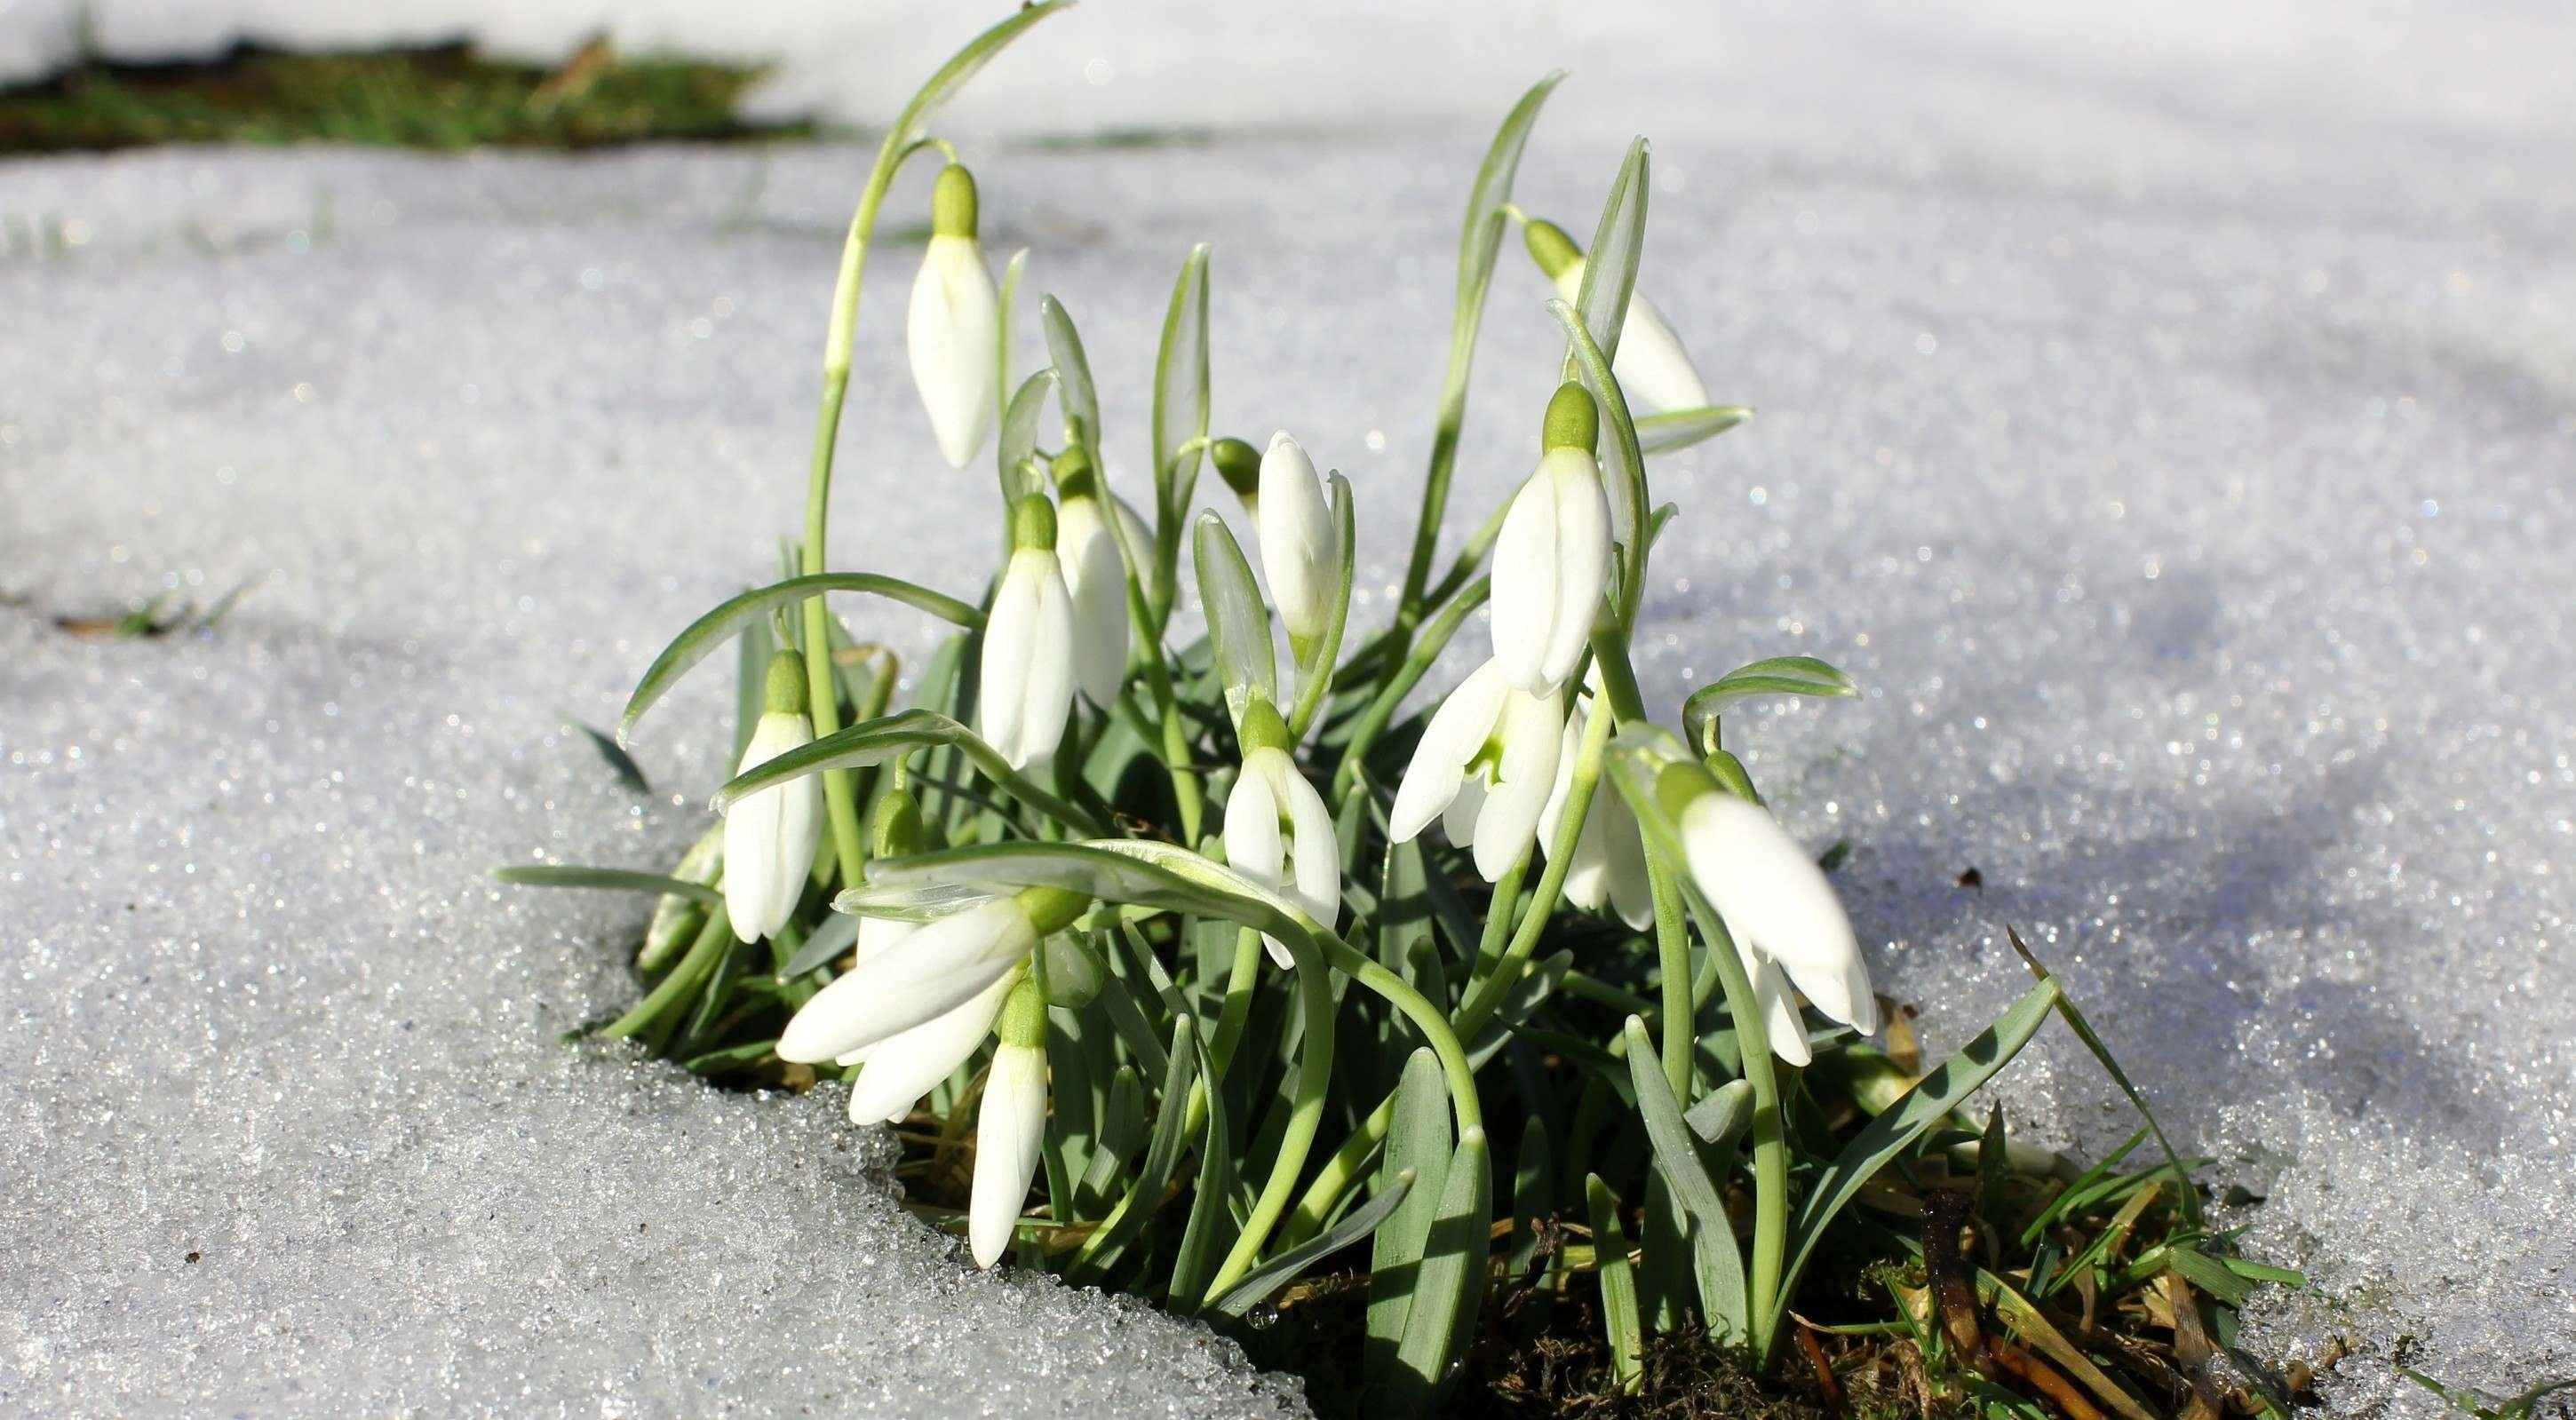 Download wallpapers macro greens snowdrops bells blur for